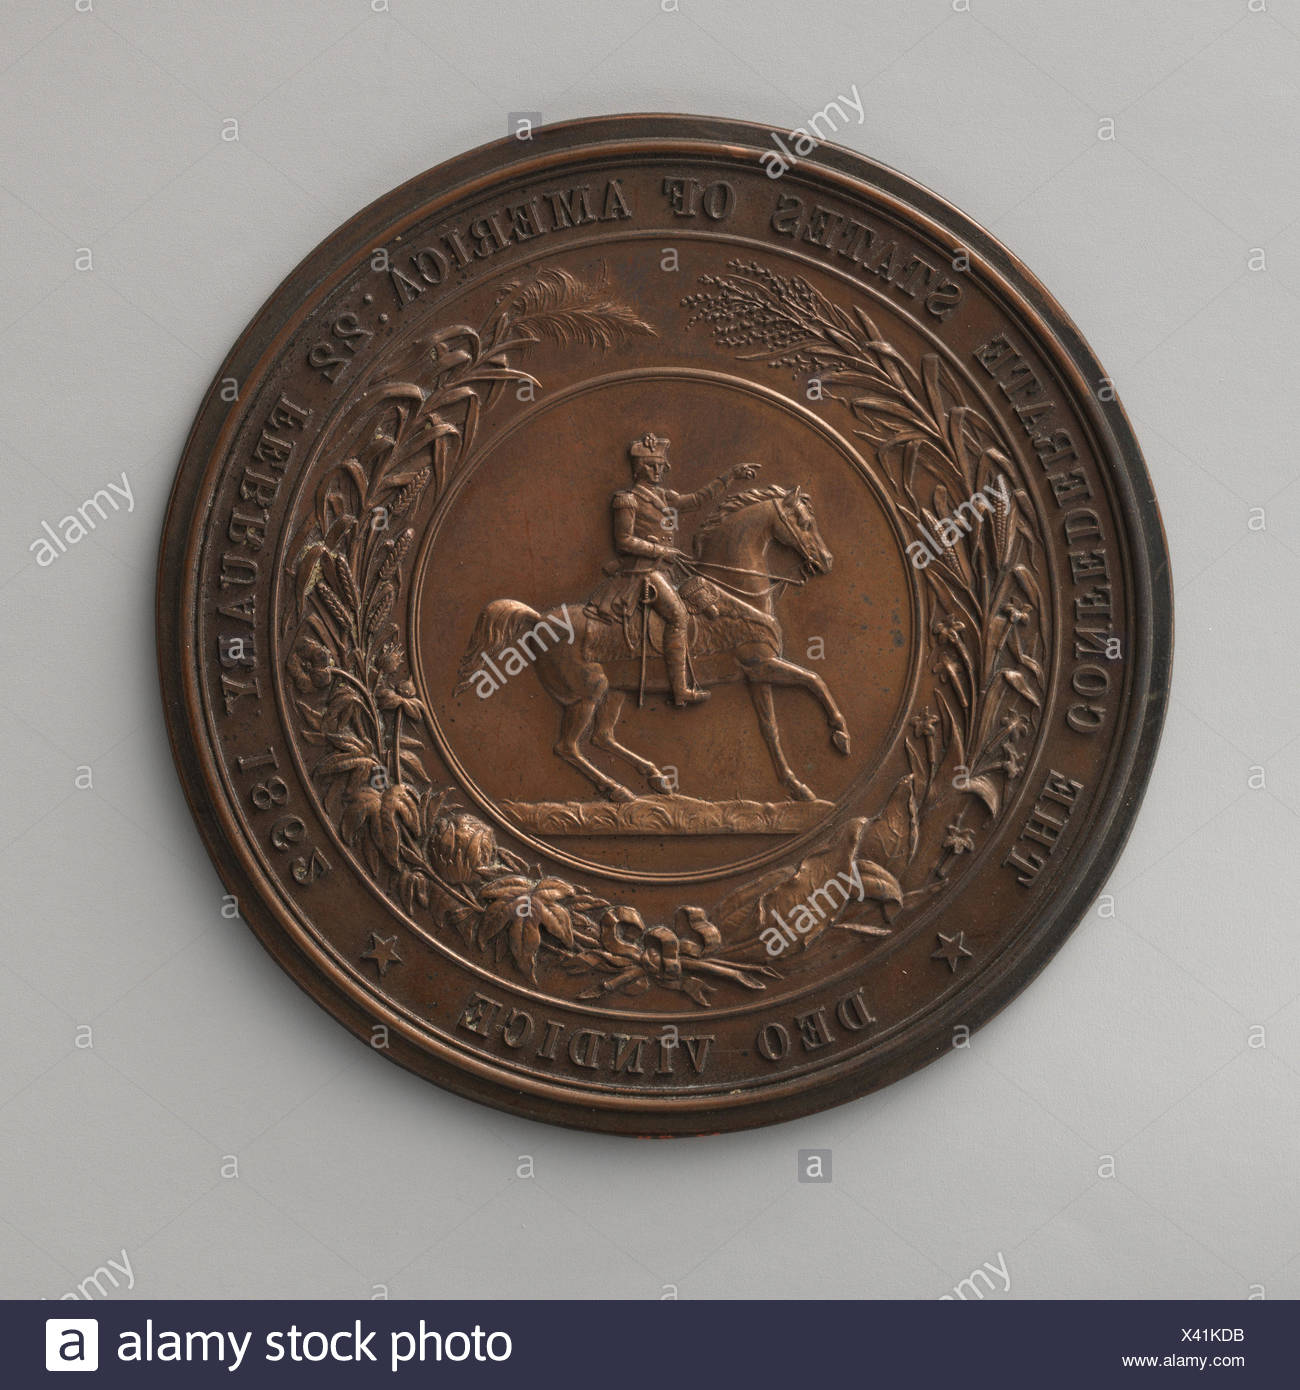 Impress of the seal of the Confederate States, 1862. Artist: Medalist: P. A. Foley (1818-1872); Artist: Medalist: Joseph Shepherd Wyon (British, - Stock Image